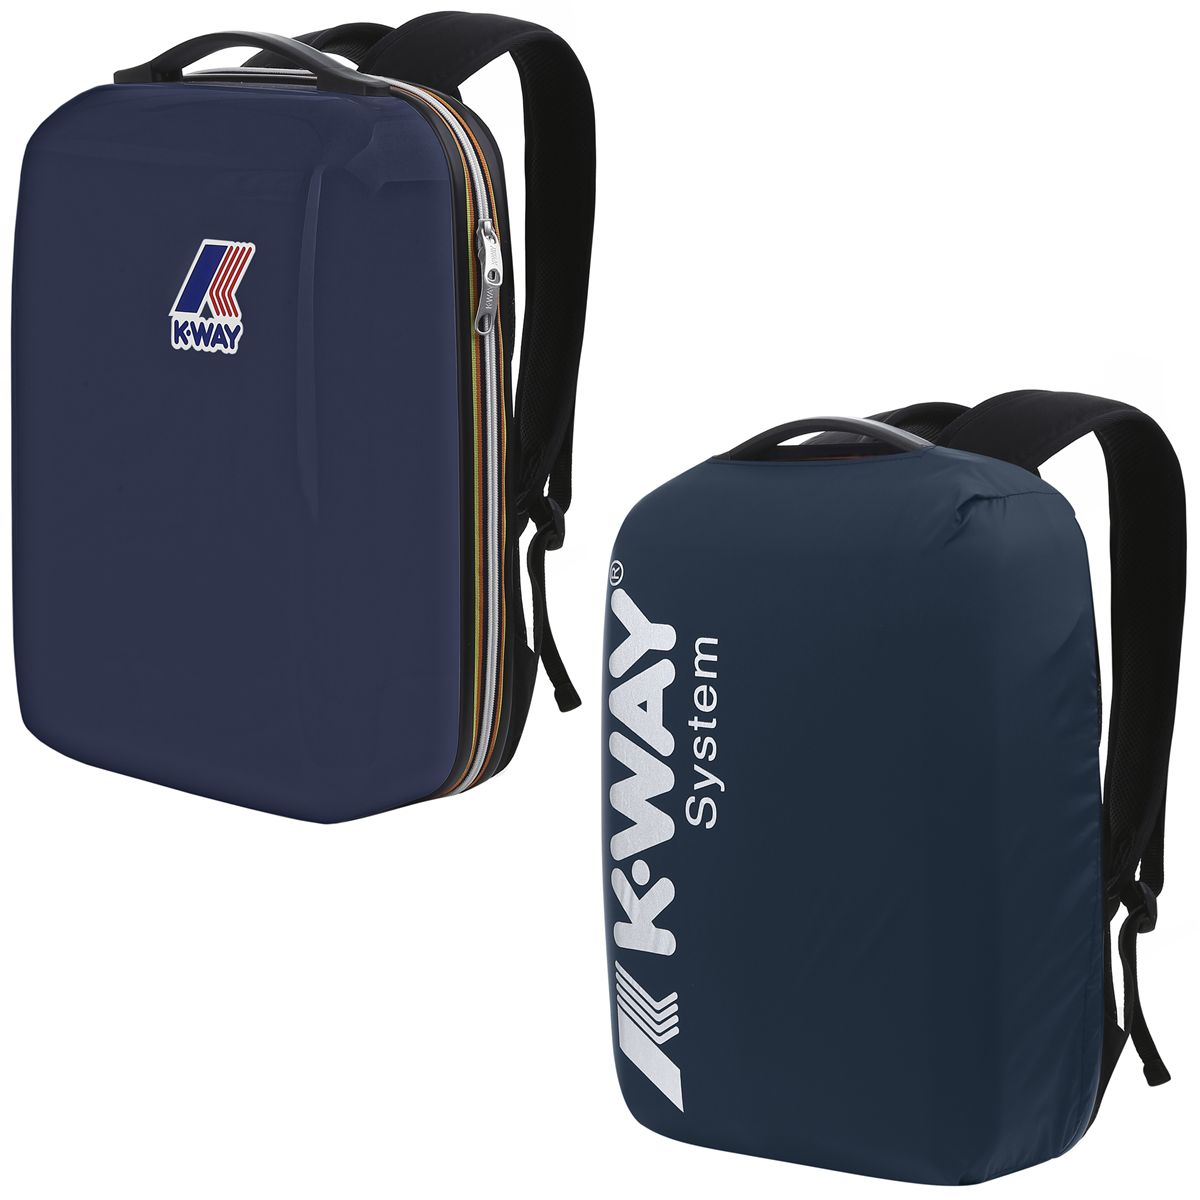 K-Way Luggage travel Bags K-WAY SYSTEM SERGE Man Woman Backpack